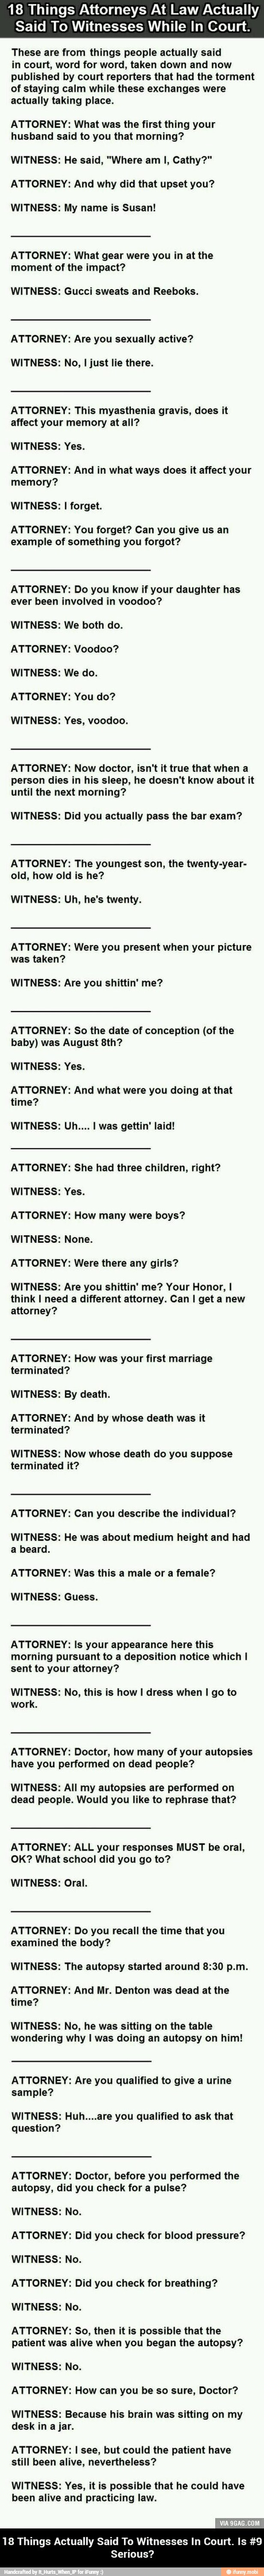 Things Attorneys At Law Actually Said to Witnesses While in Court.jpg